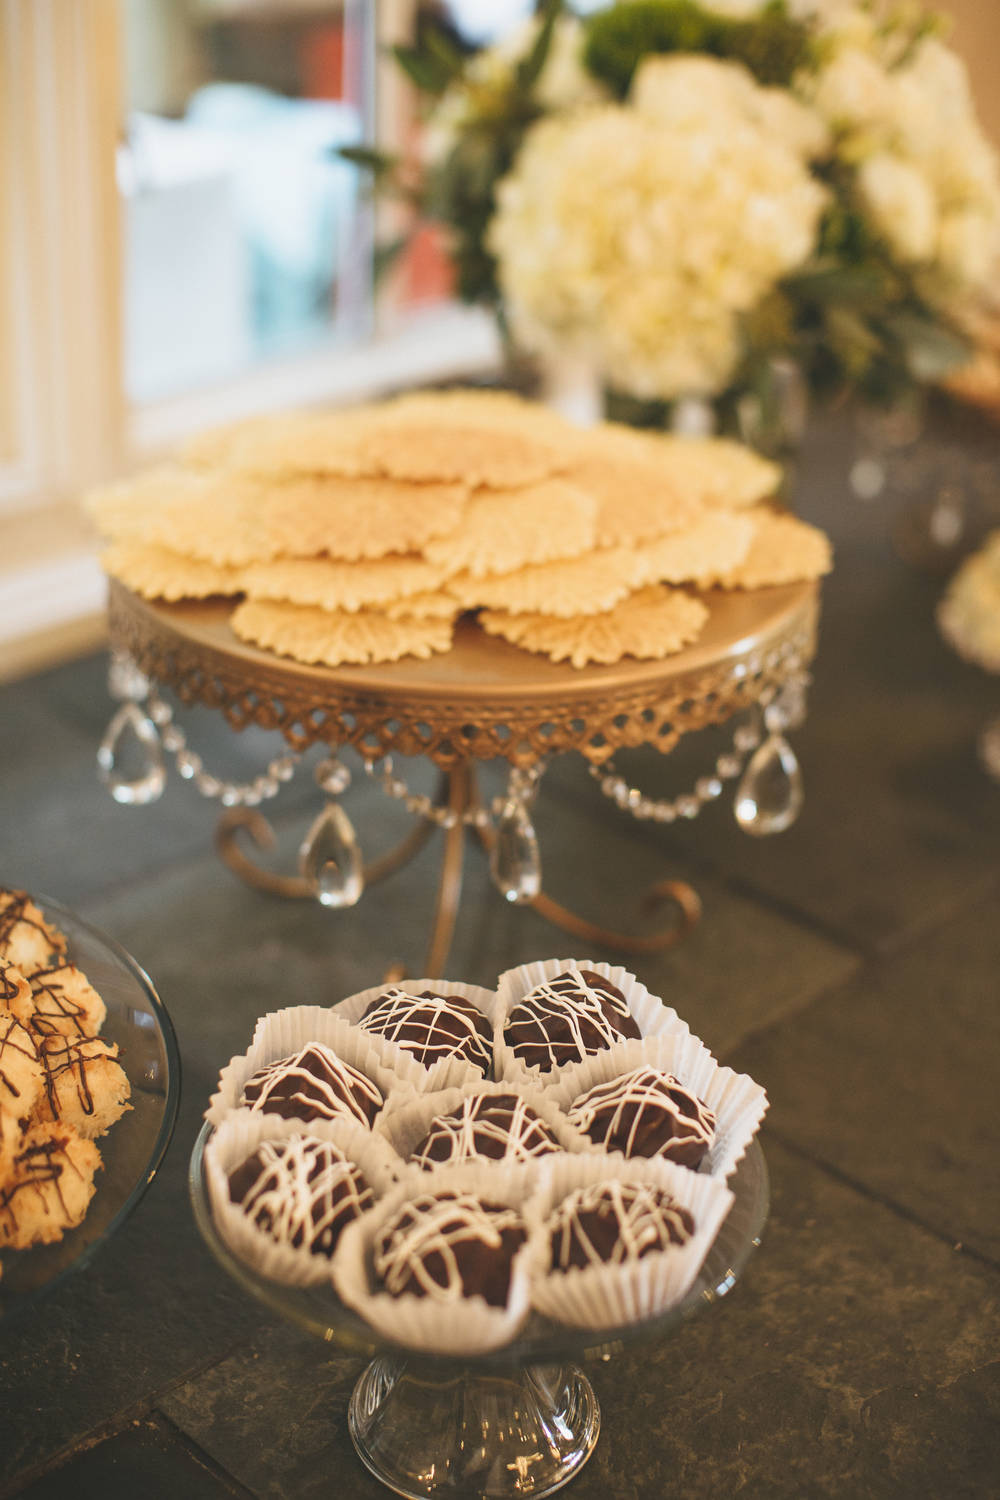 Dessert Buffet Display at DeLille Cellars Wedding